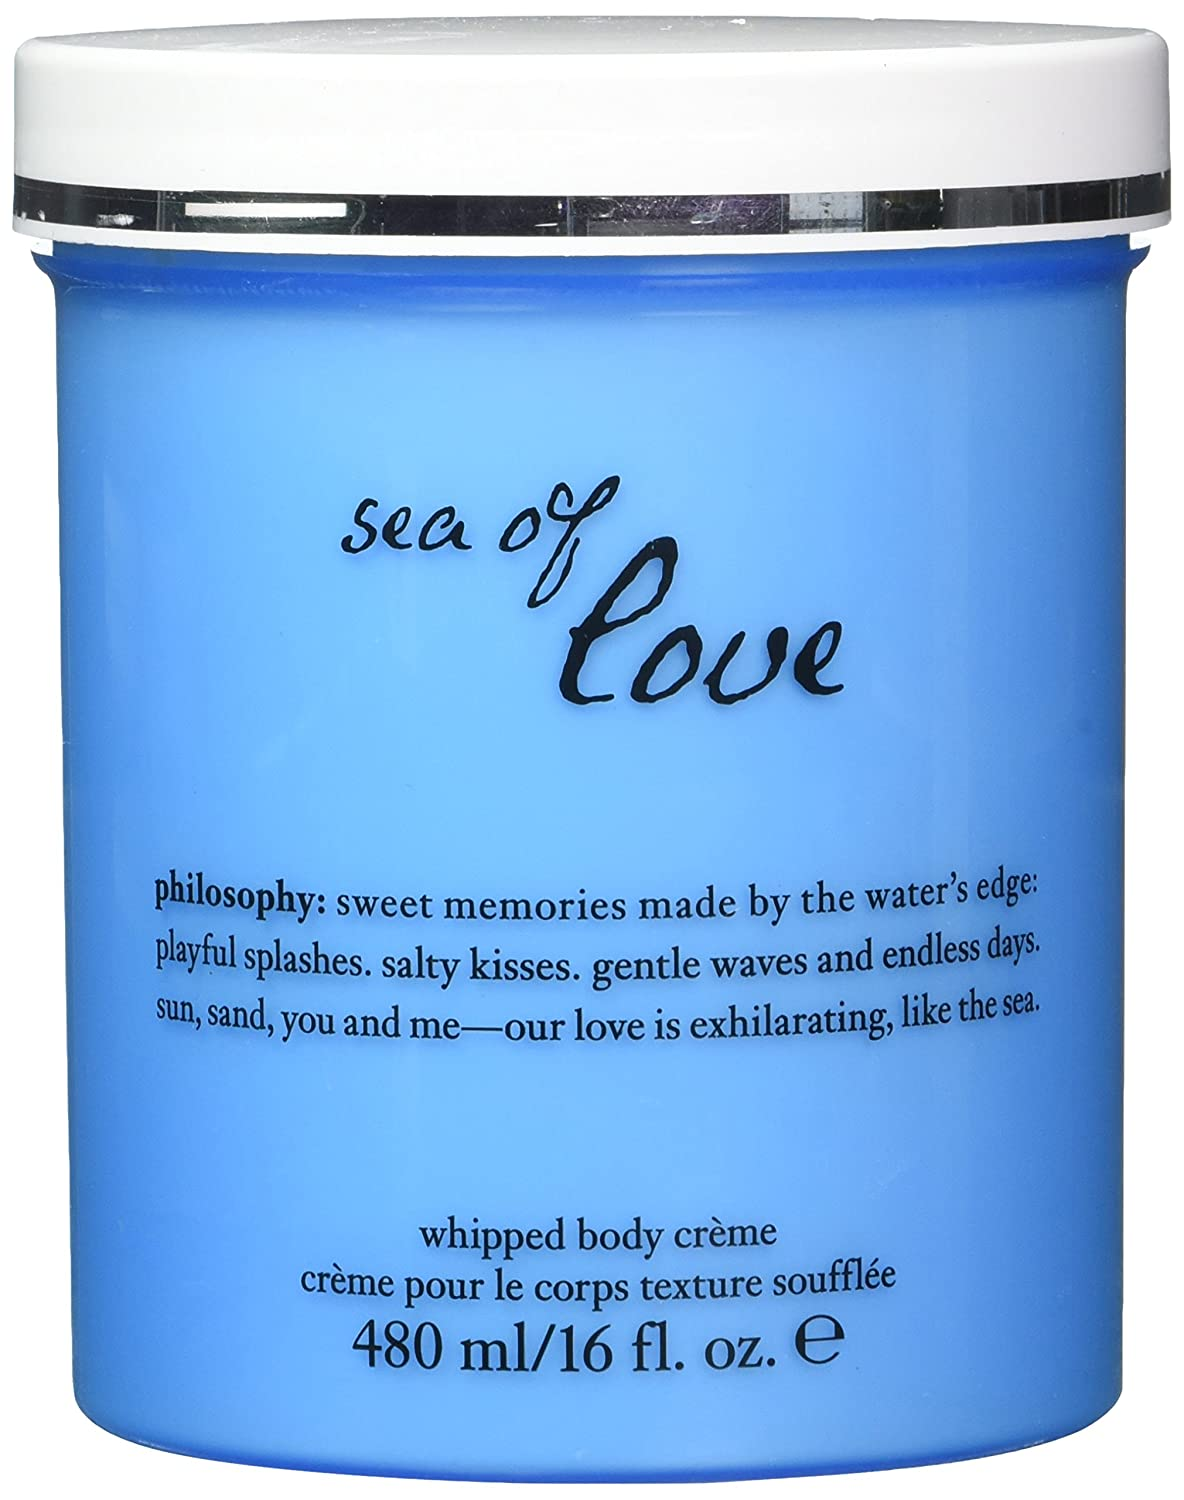 Philosophy Sea Of Love Whipped Body Creme for Women, 16.0 fl. Oz.